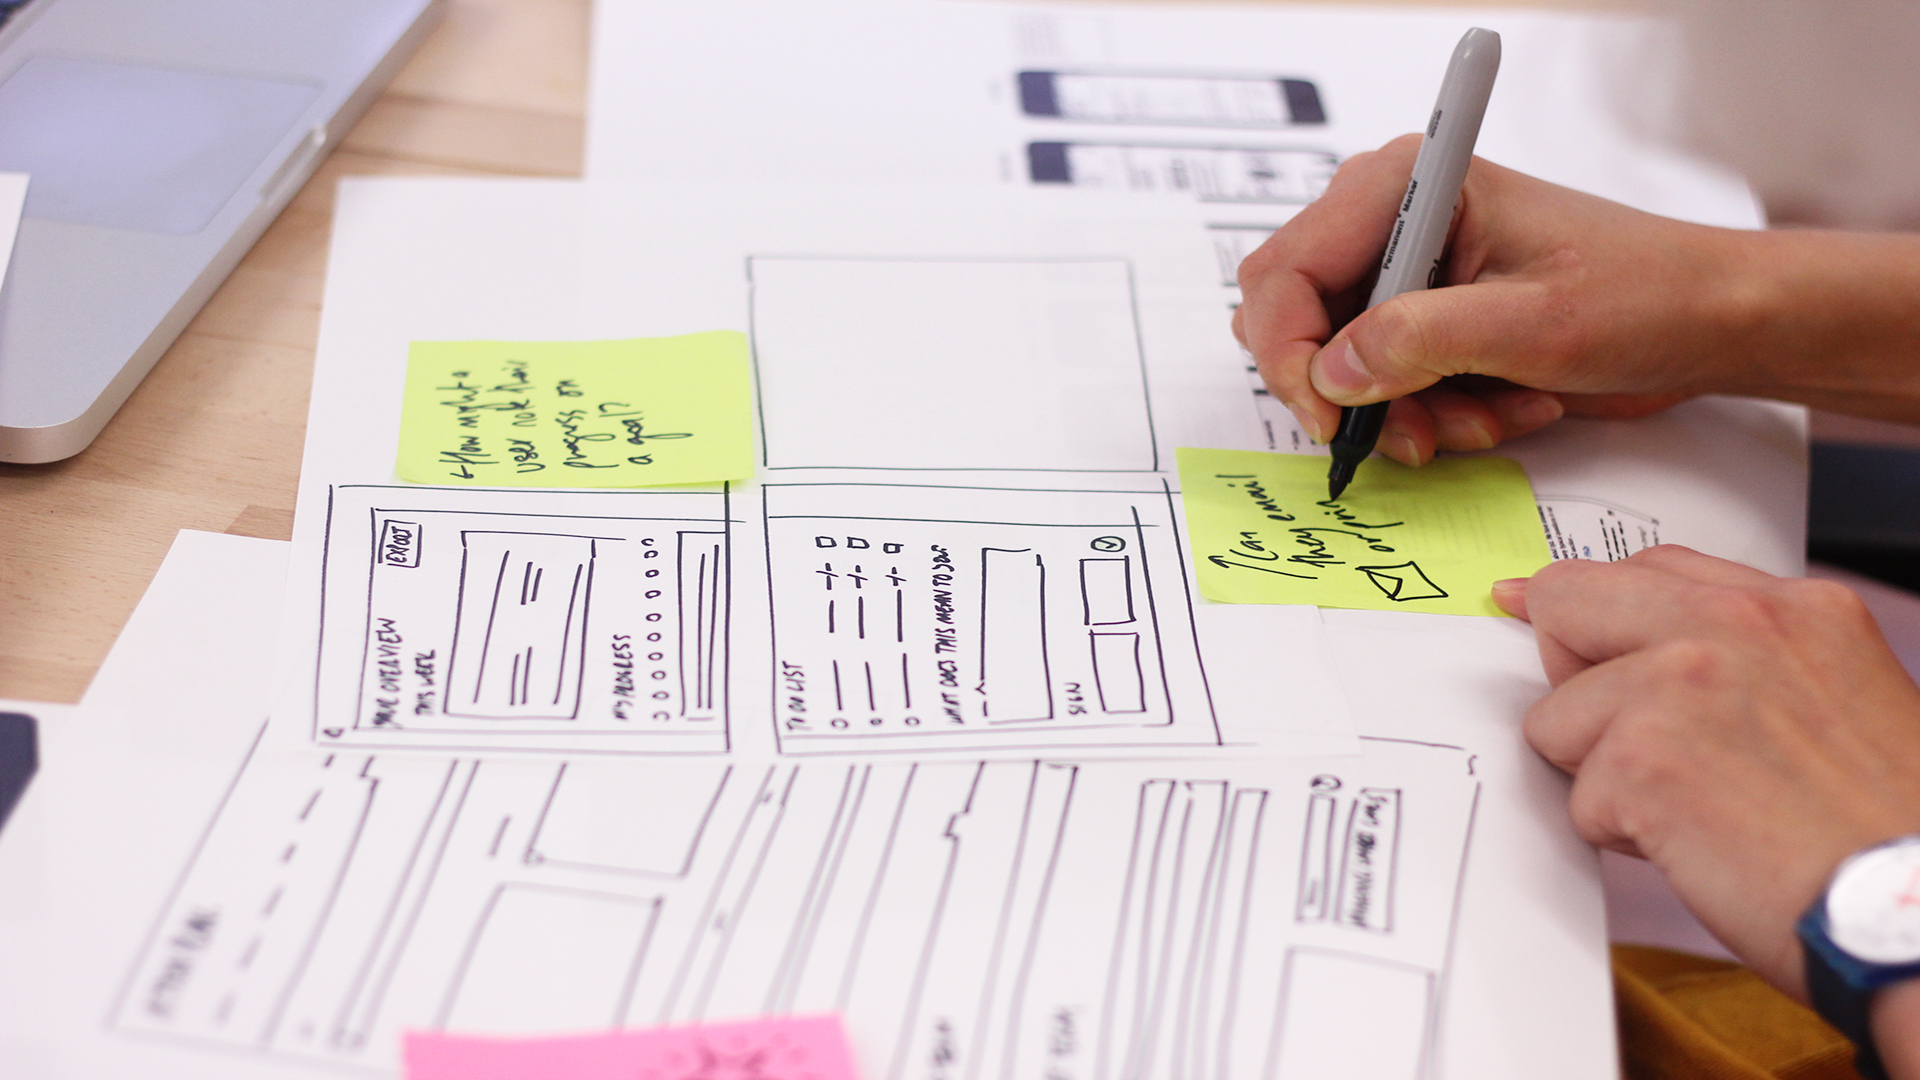 Producing early wireframes based on the user needs